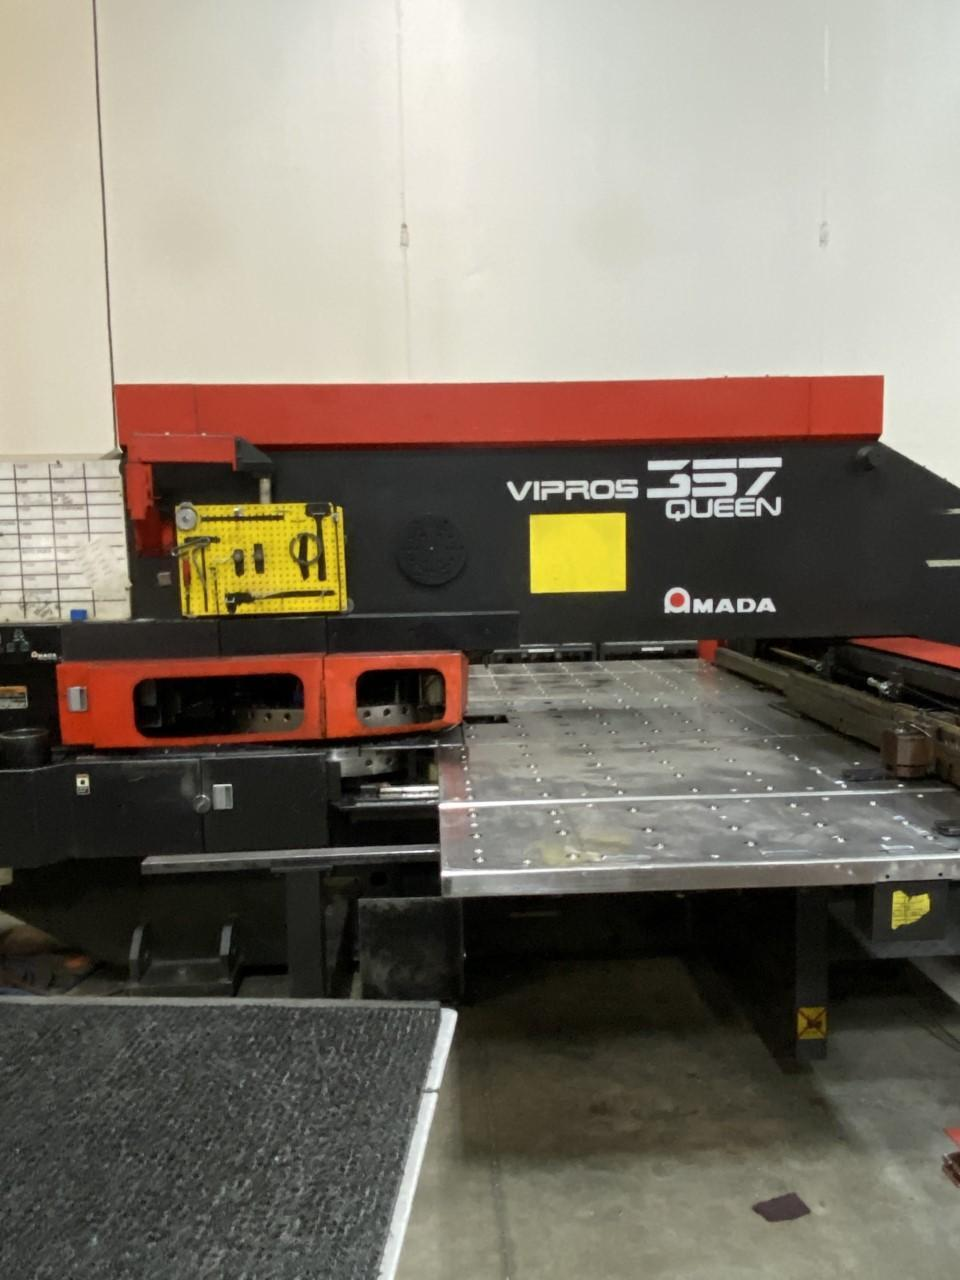 """1997 Amada Vipros 357 Queen, 33 Ton, 50"""" x 72"""" Travel CNC Turret Punch"""